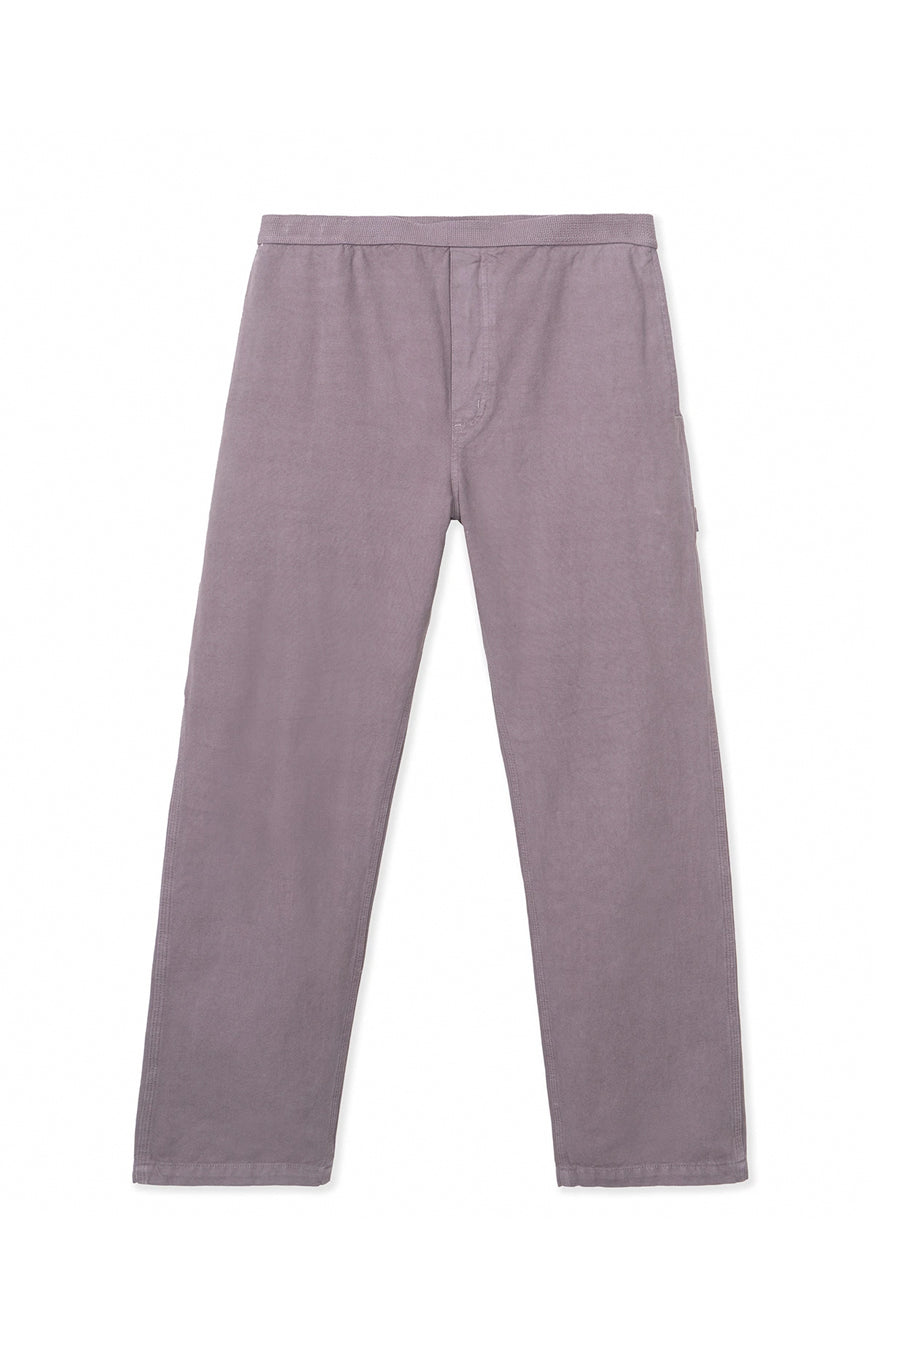 Brain Dead - Plum Washed Hard Ware/ Soft Wear Carpenter Pants